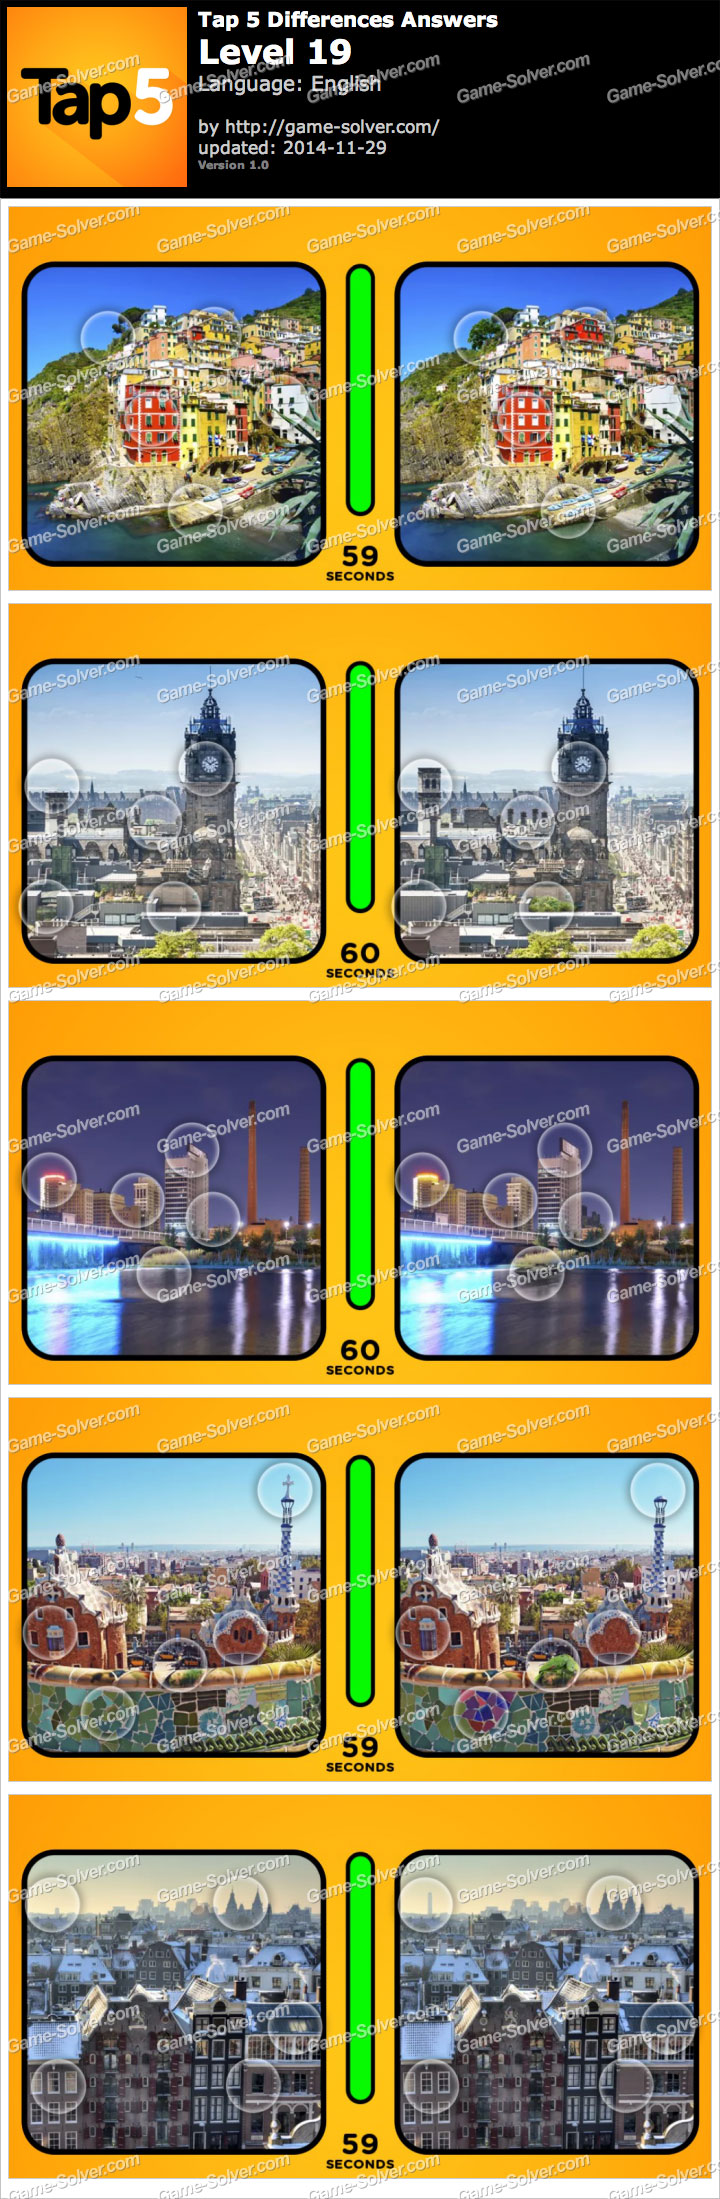 Tap 5 Differences Level 19